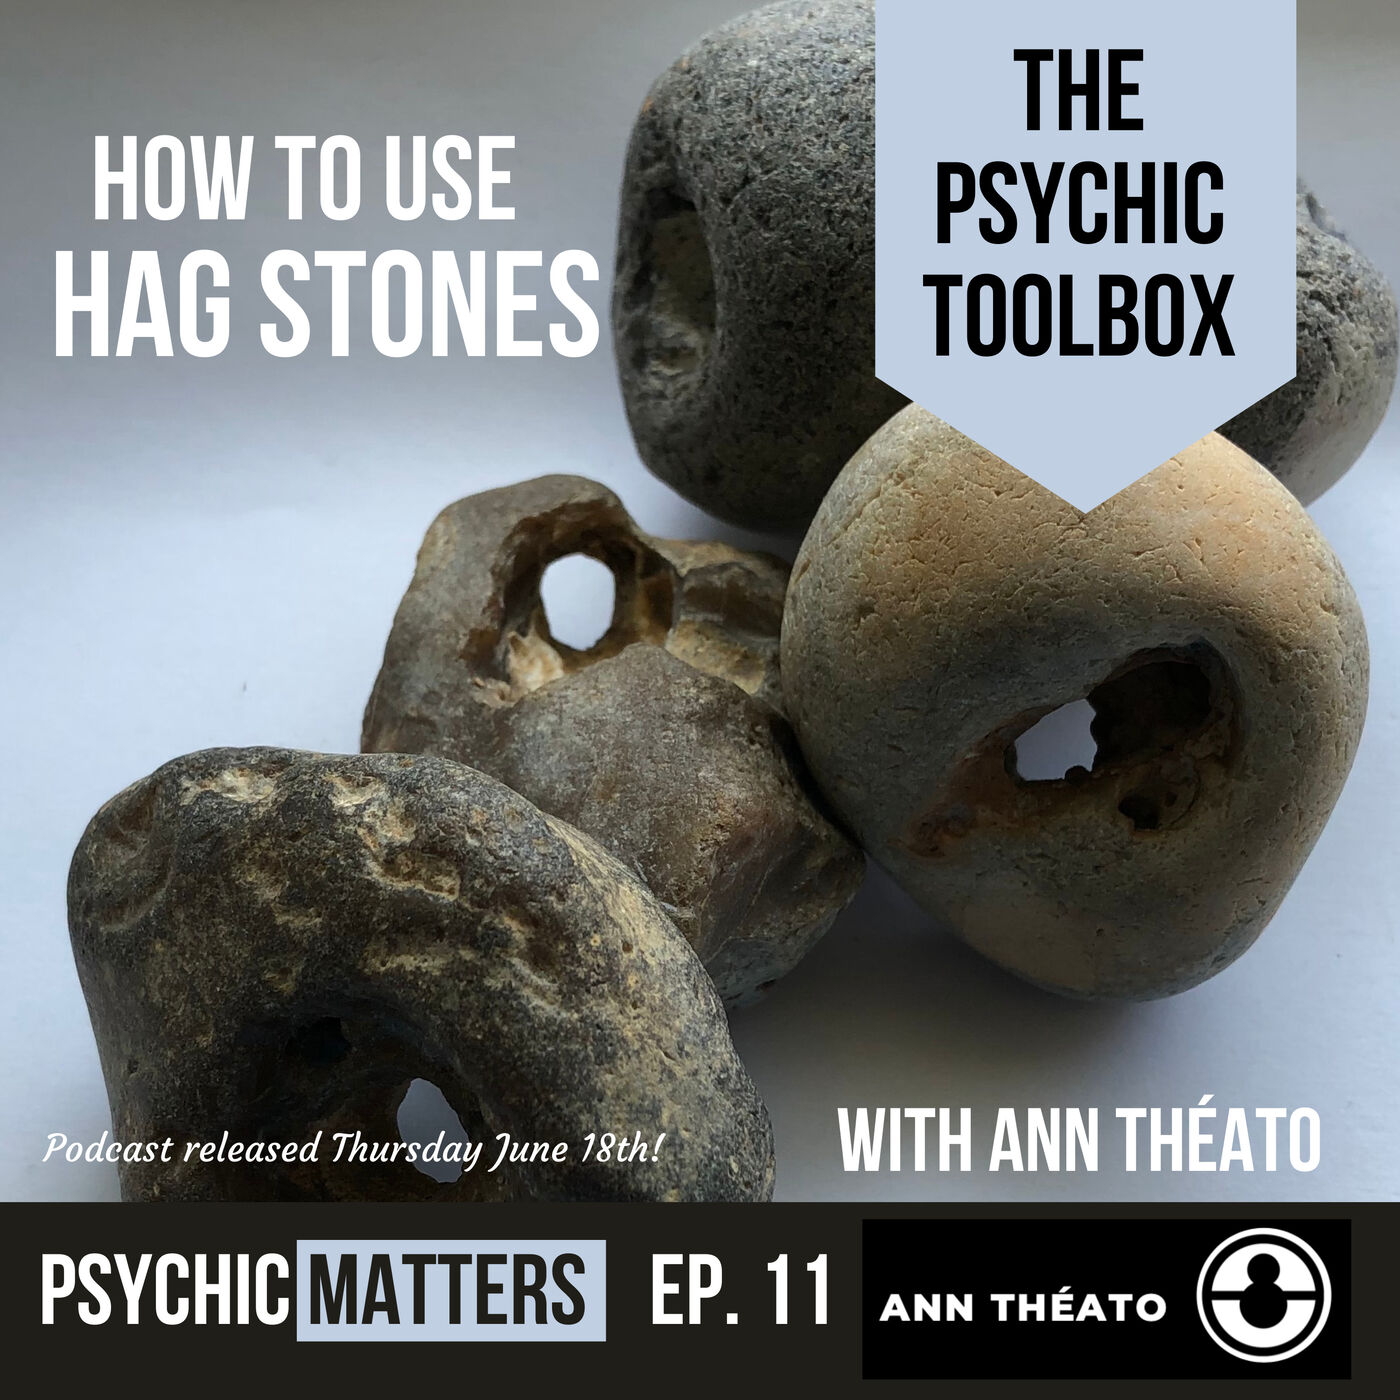 Pm 011 The Psychic Toolbox How To Use Hag Stones With Ann Theato Although different hags are unique in appearance and mannerism, they have many aspects in common. pm 011 the psychic toolbox how to